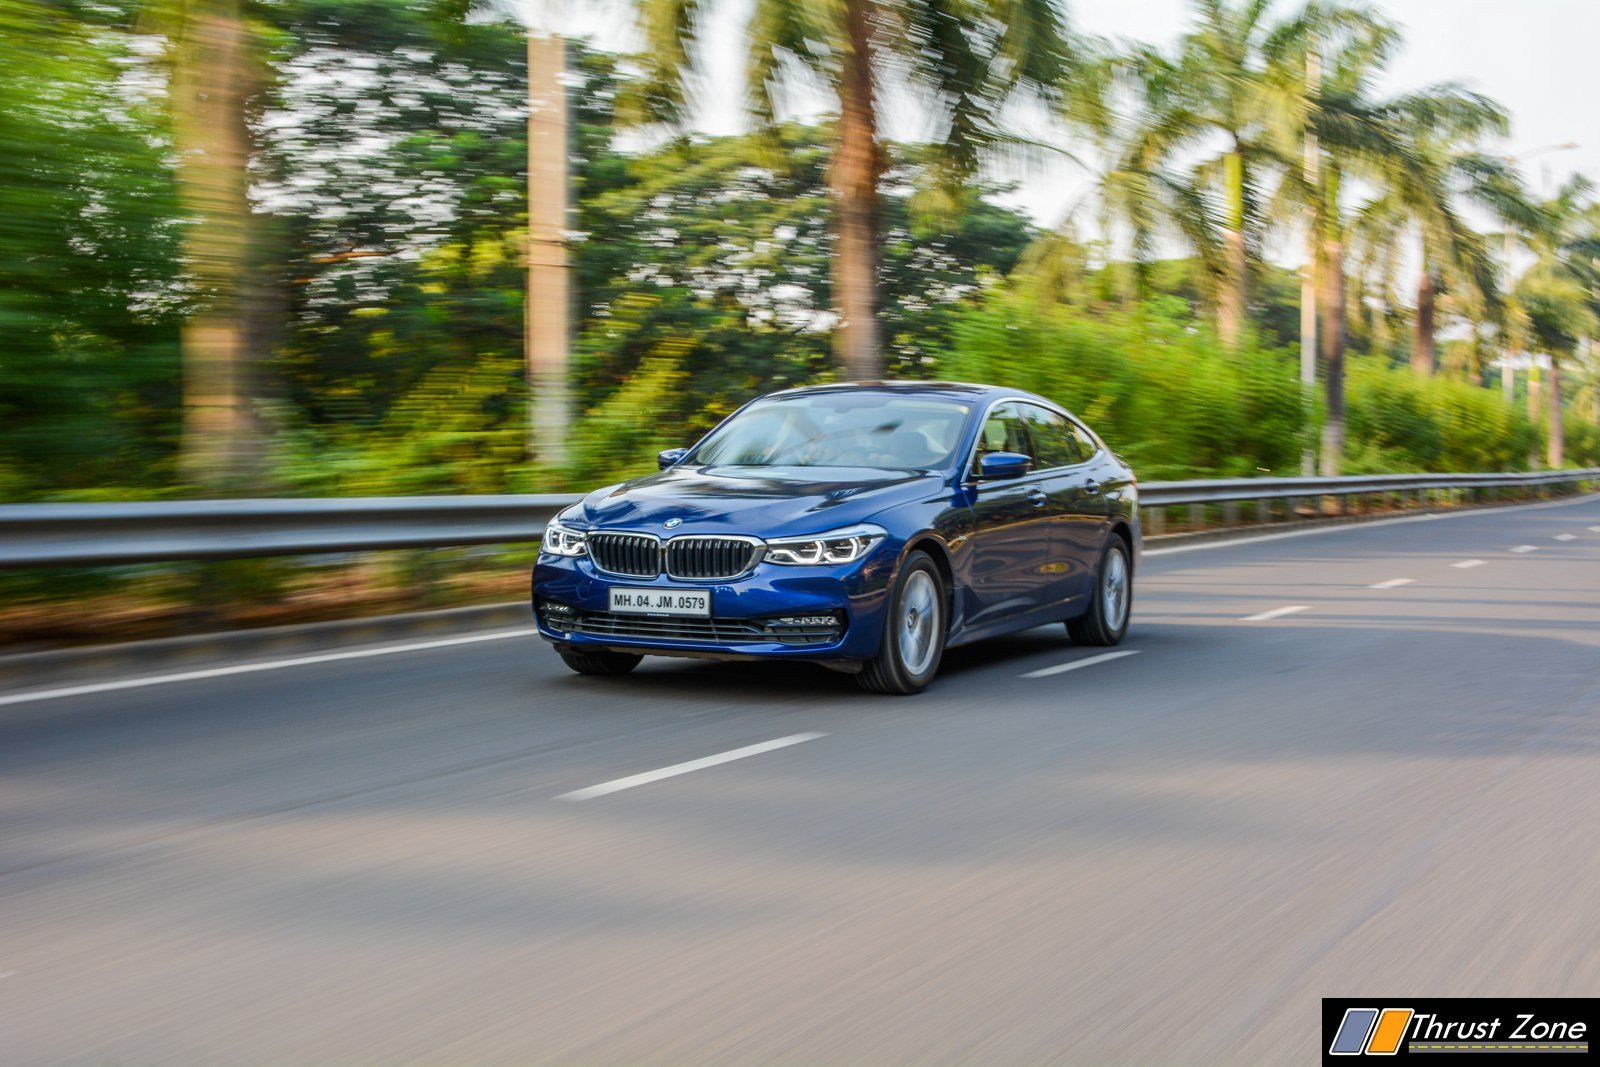 https://www.thrustzone.com/wp-content/uploads/2018/12/2018-BMW-6-GT-Petrol-Review-1.jpg